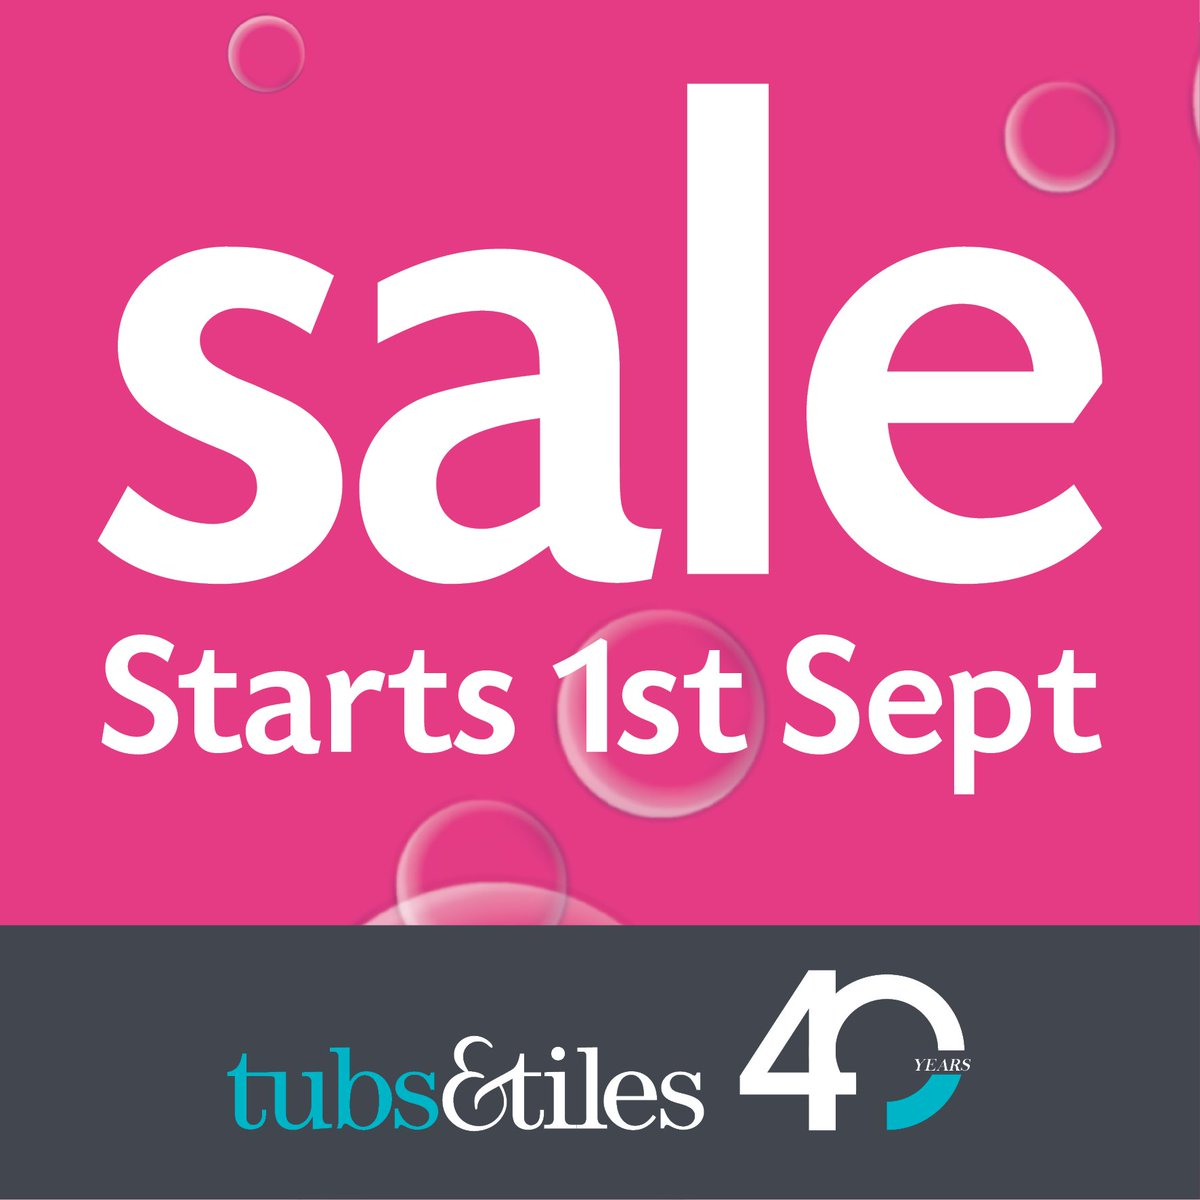 Tubs & Tiles (@TubsTiles) | Twitter